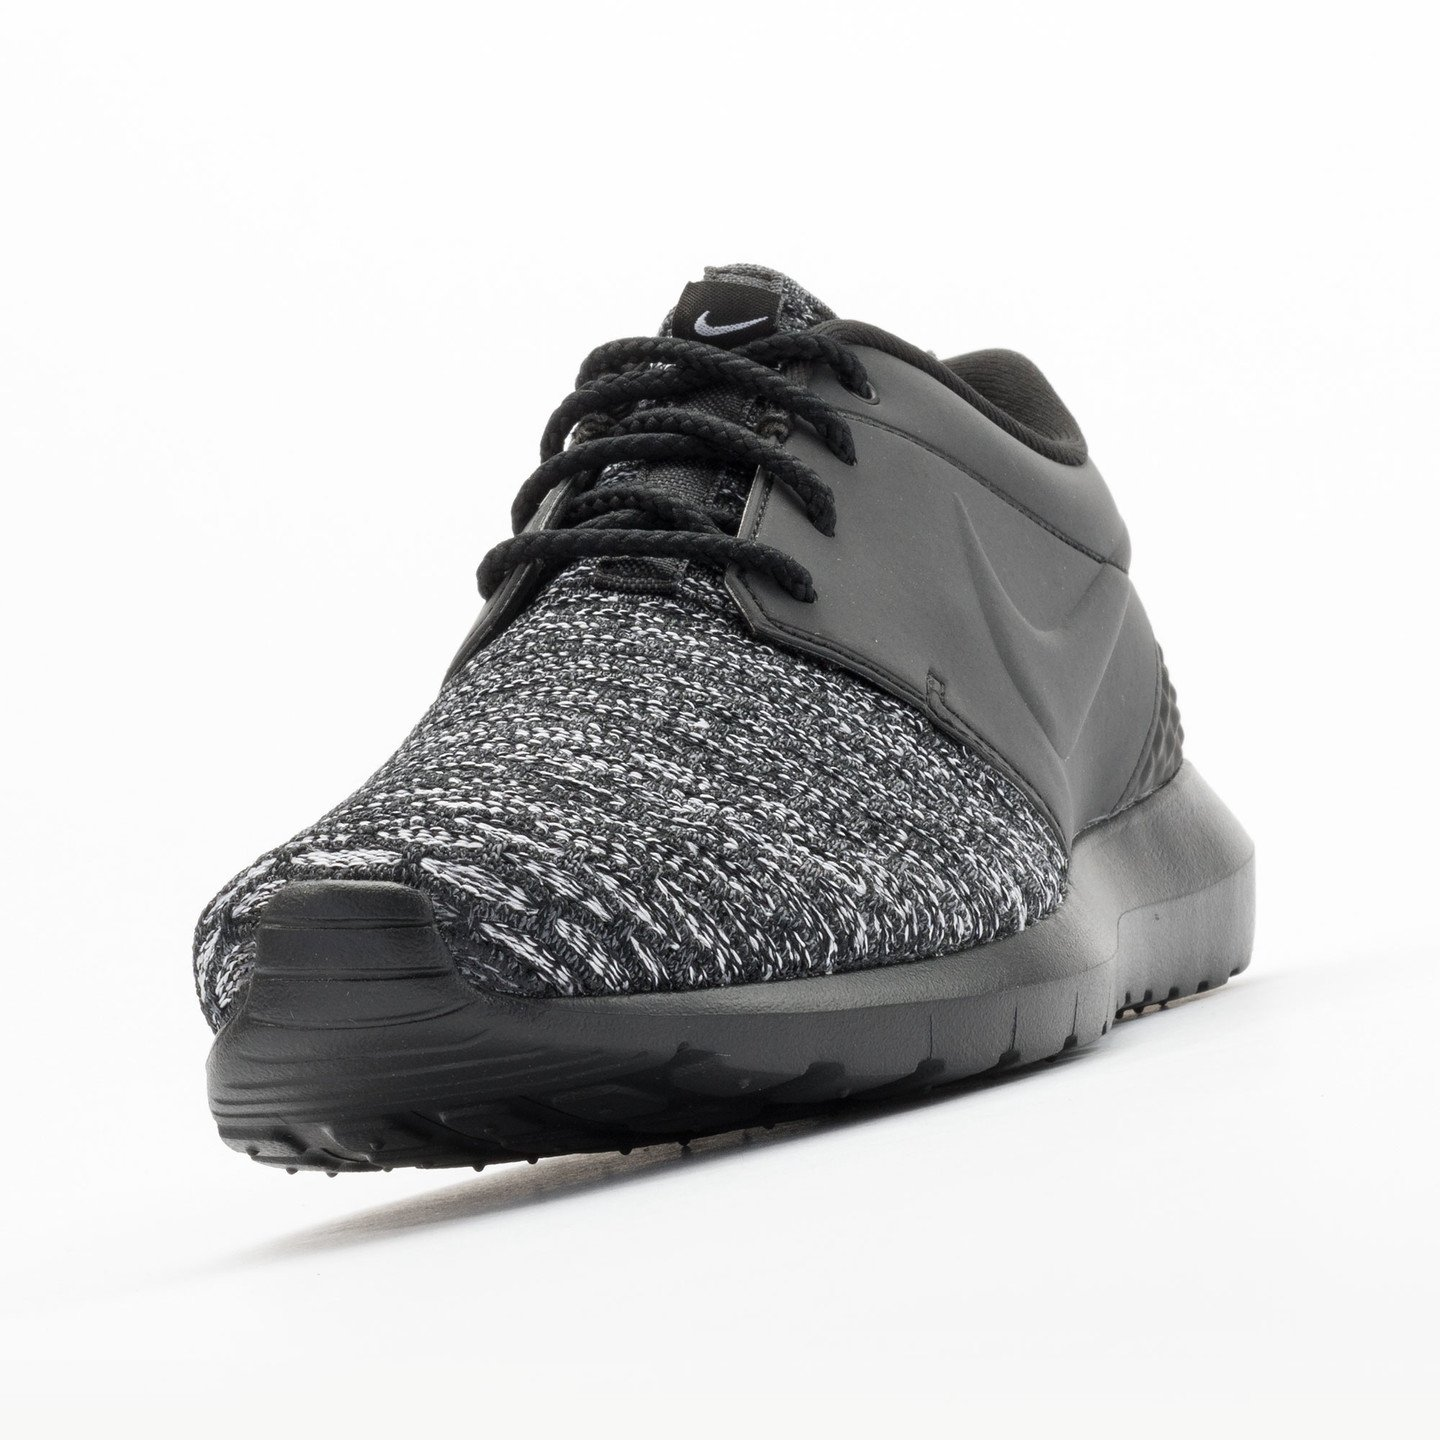 Nike Roshe NM Flyknit Premium Black / Black / Dark Grey / White 746825-002-42.5